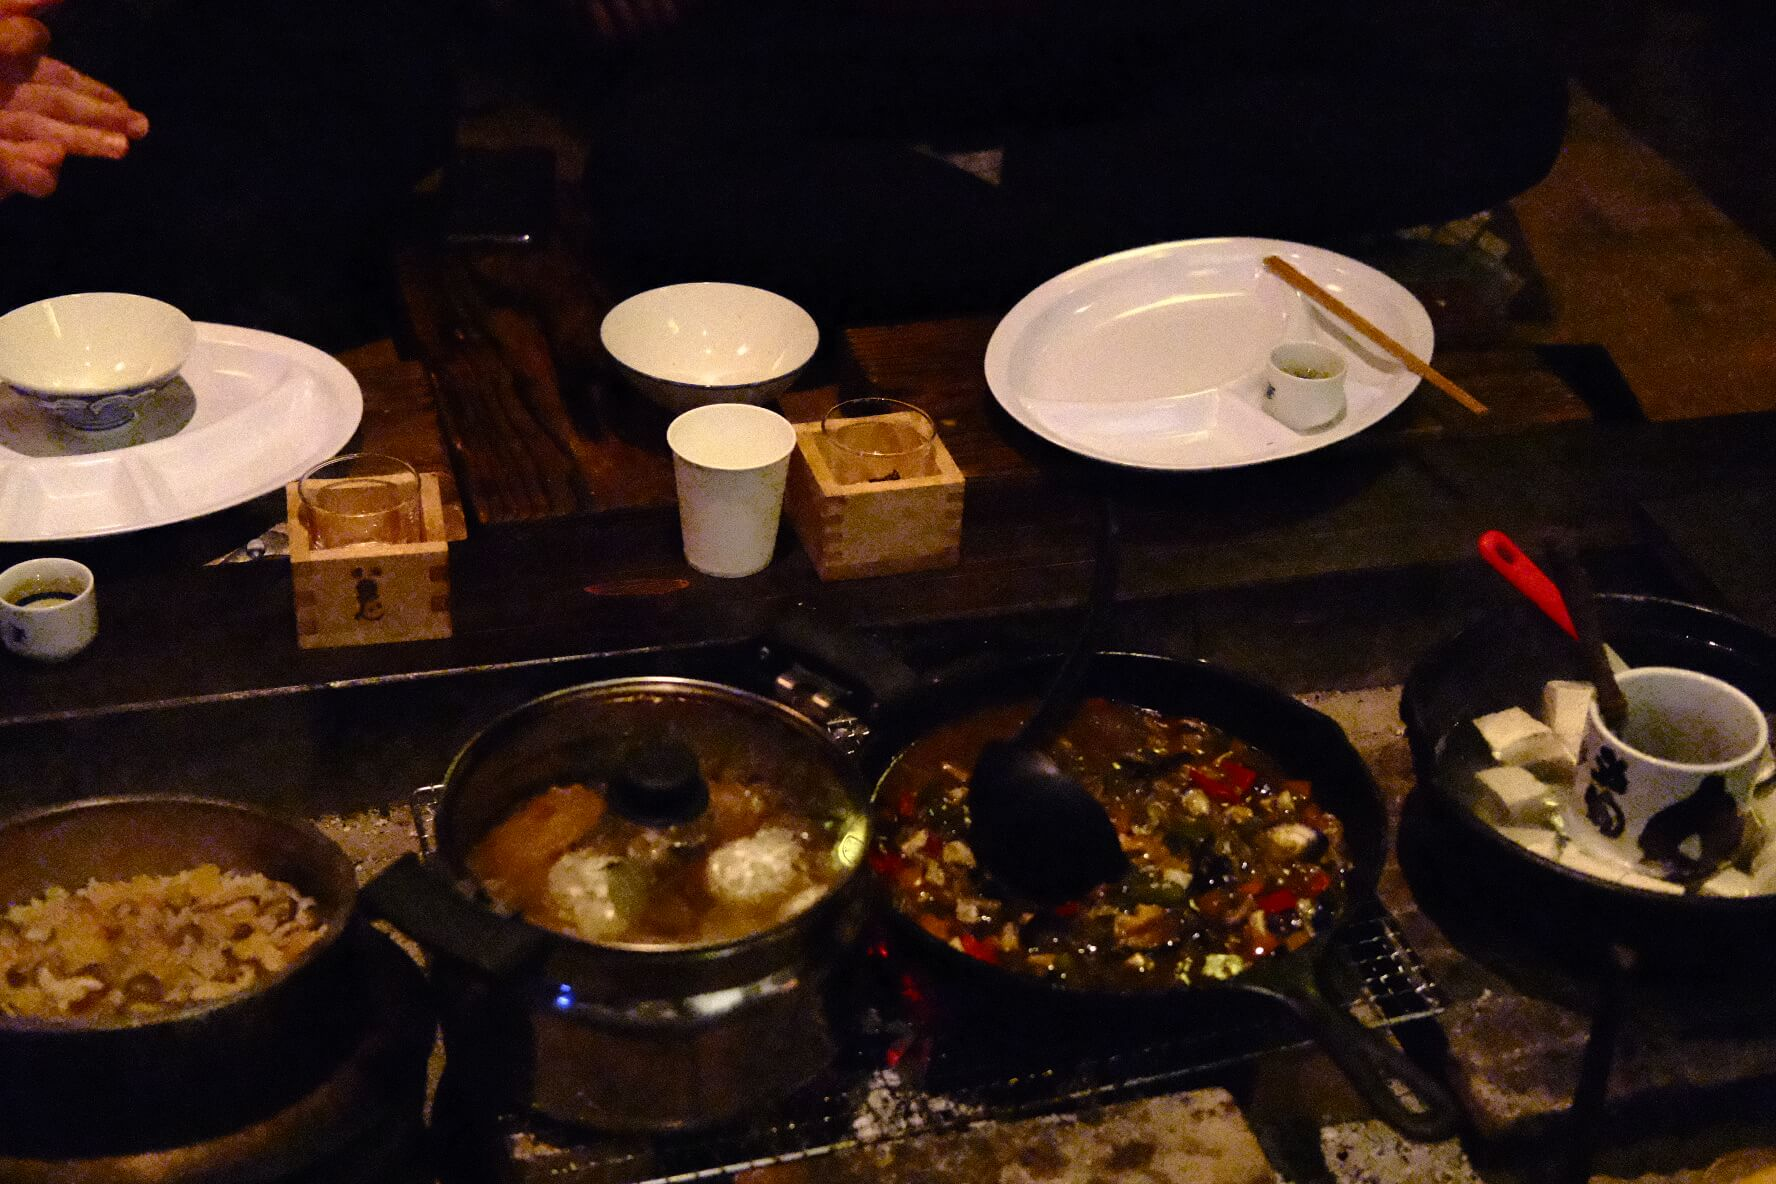 A feast in the Iya Valley made by Shino San